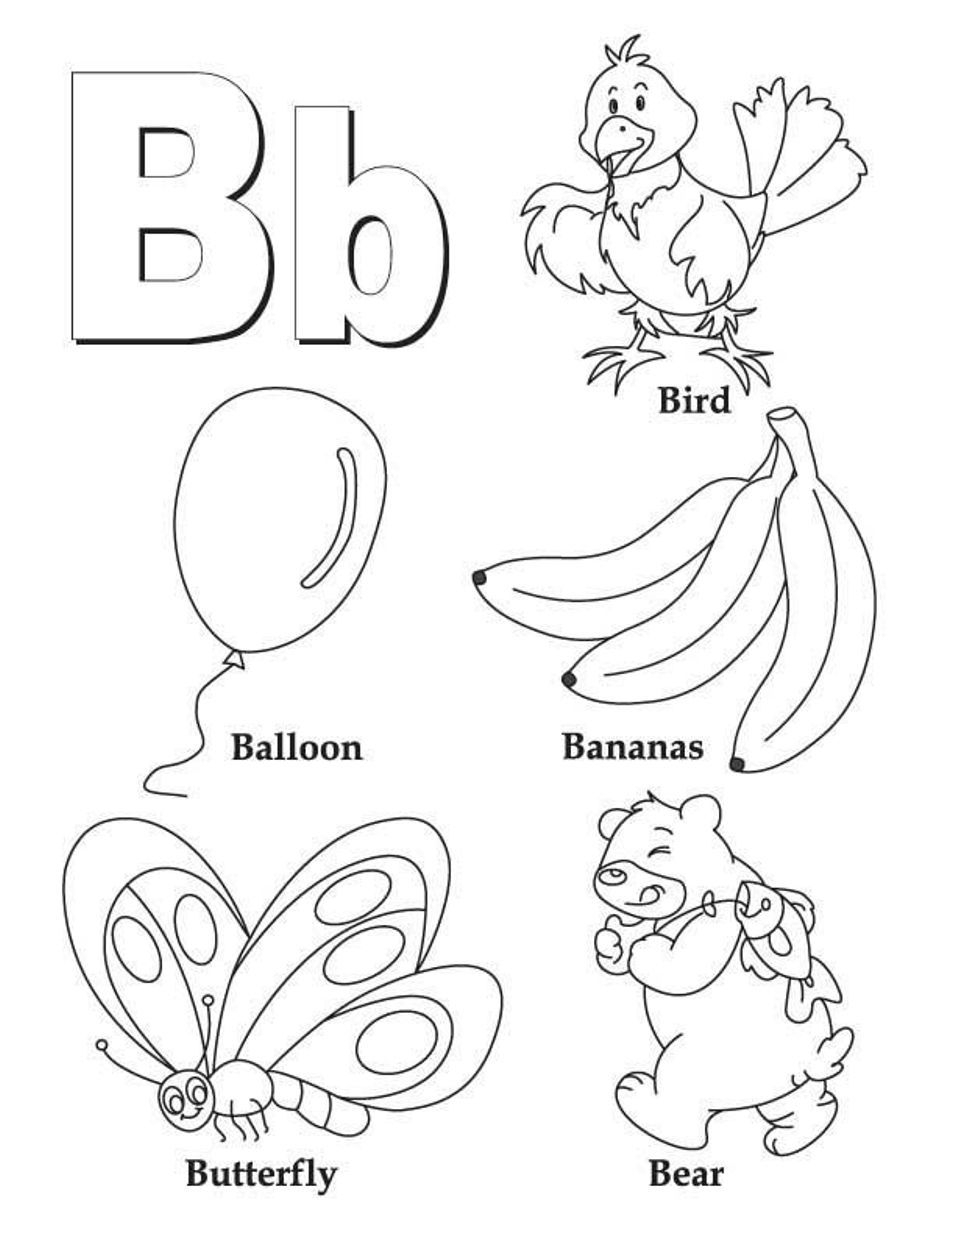 Letter B Coloring Pages - Preschool And Kindergarten inside Alphabet Colouring Worksheets For Kindergarten